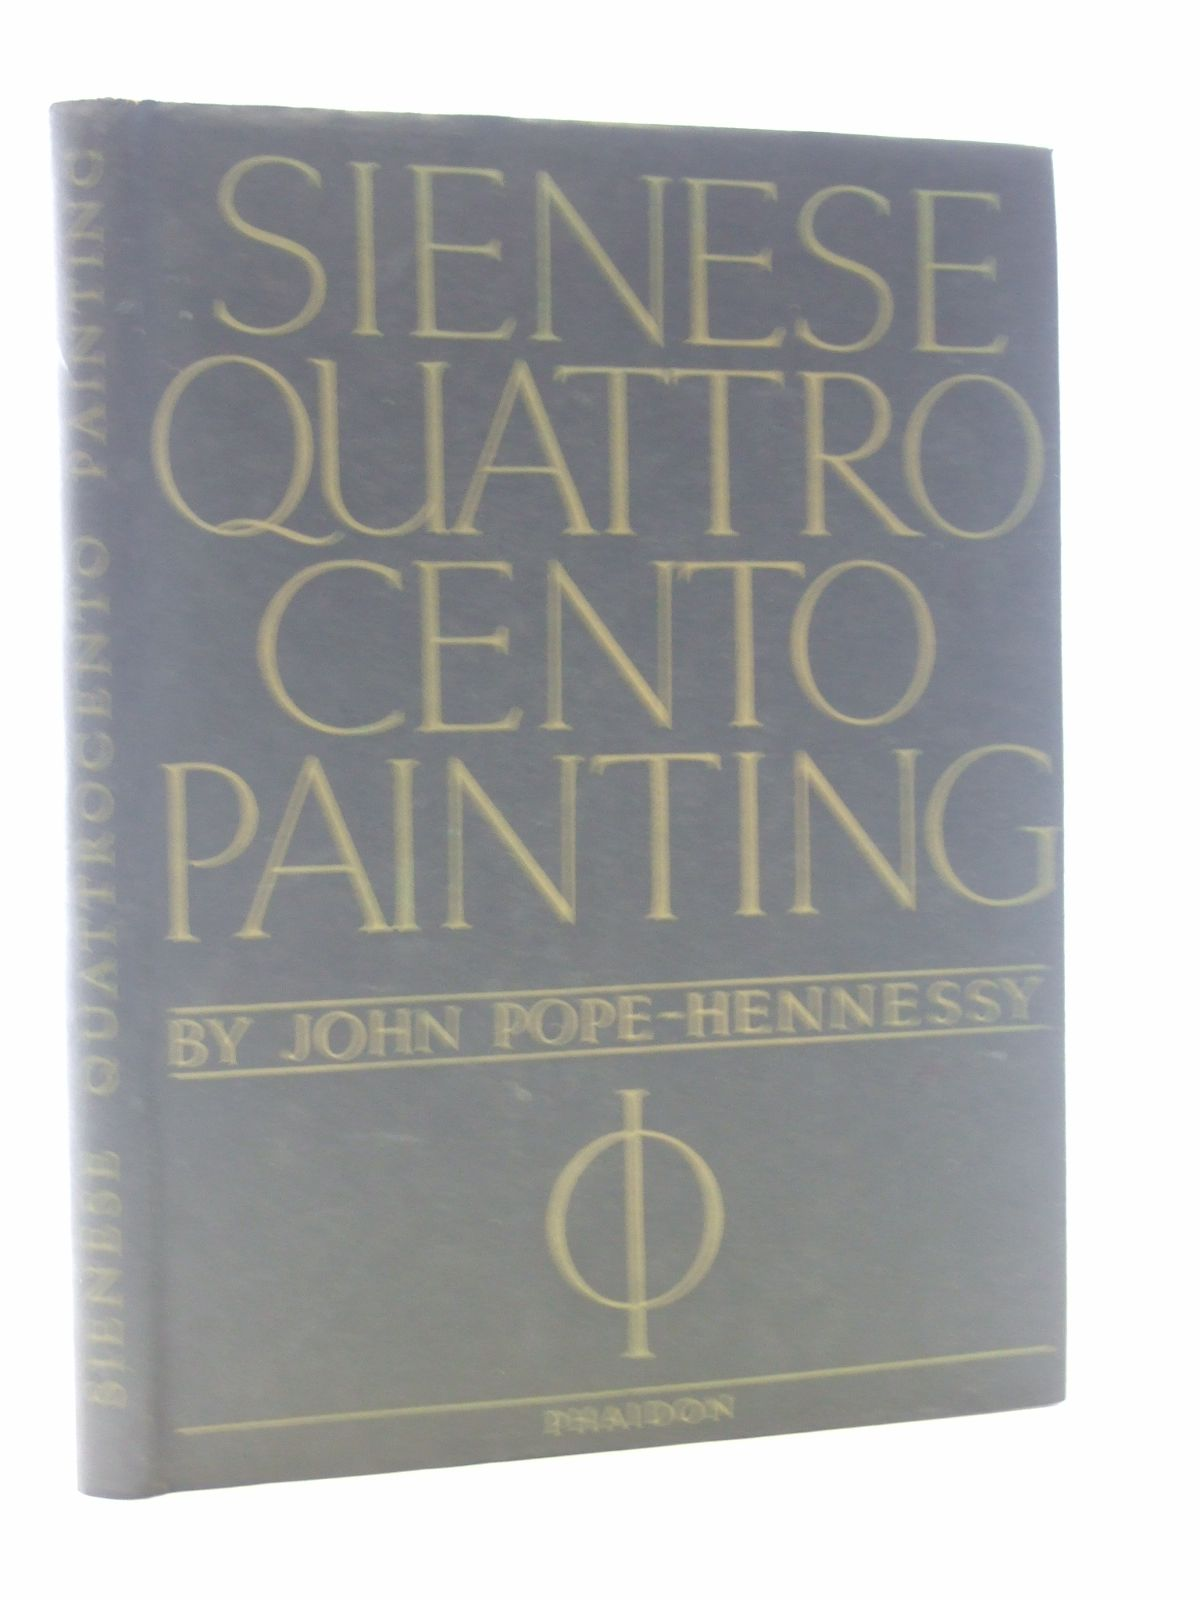 Photo of SIENESE QUATTROCENTO PAINTING written by Pope-Hennessy, John published by Phaidon Press Ltd. (STOCK CODE: 1805904)  for sale by Stella & Rose's Books